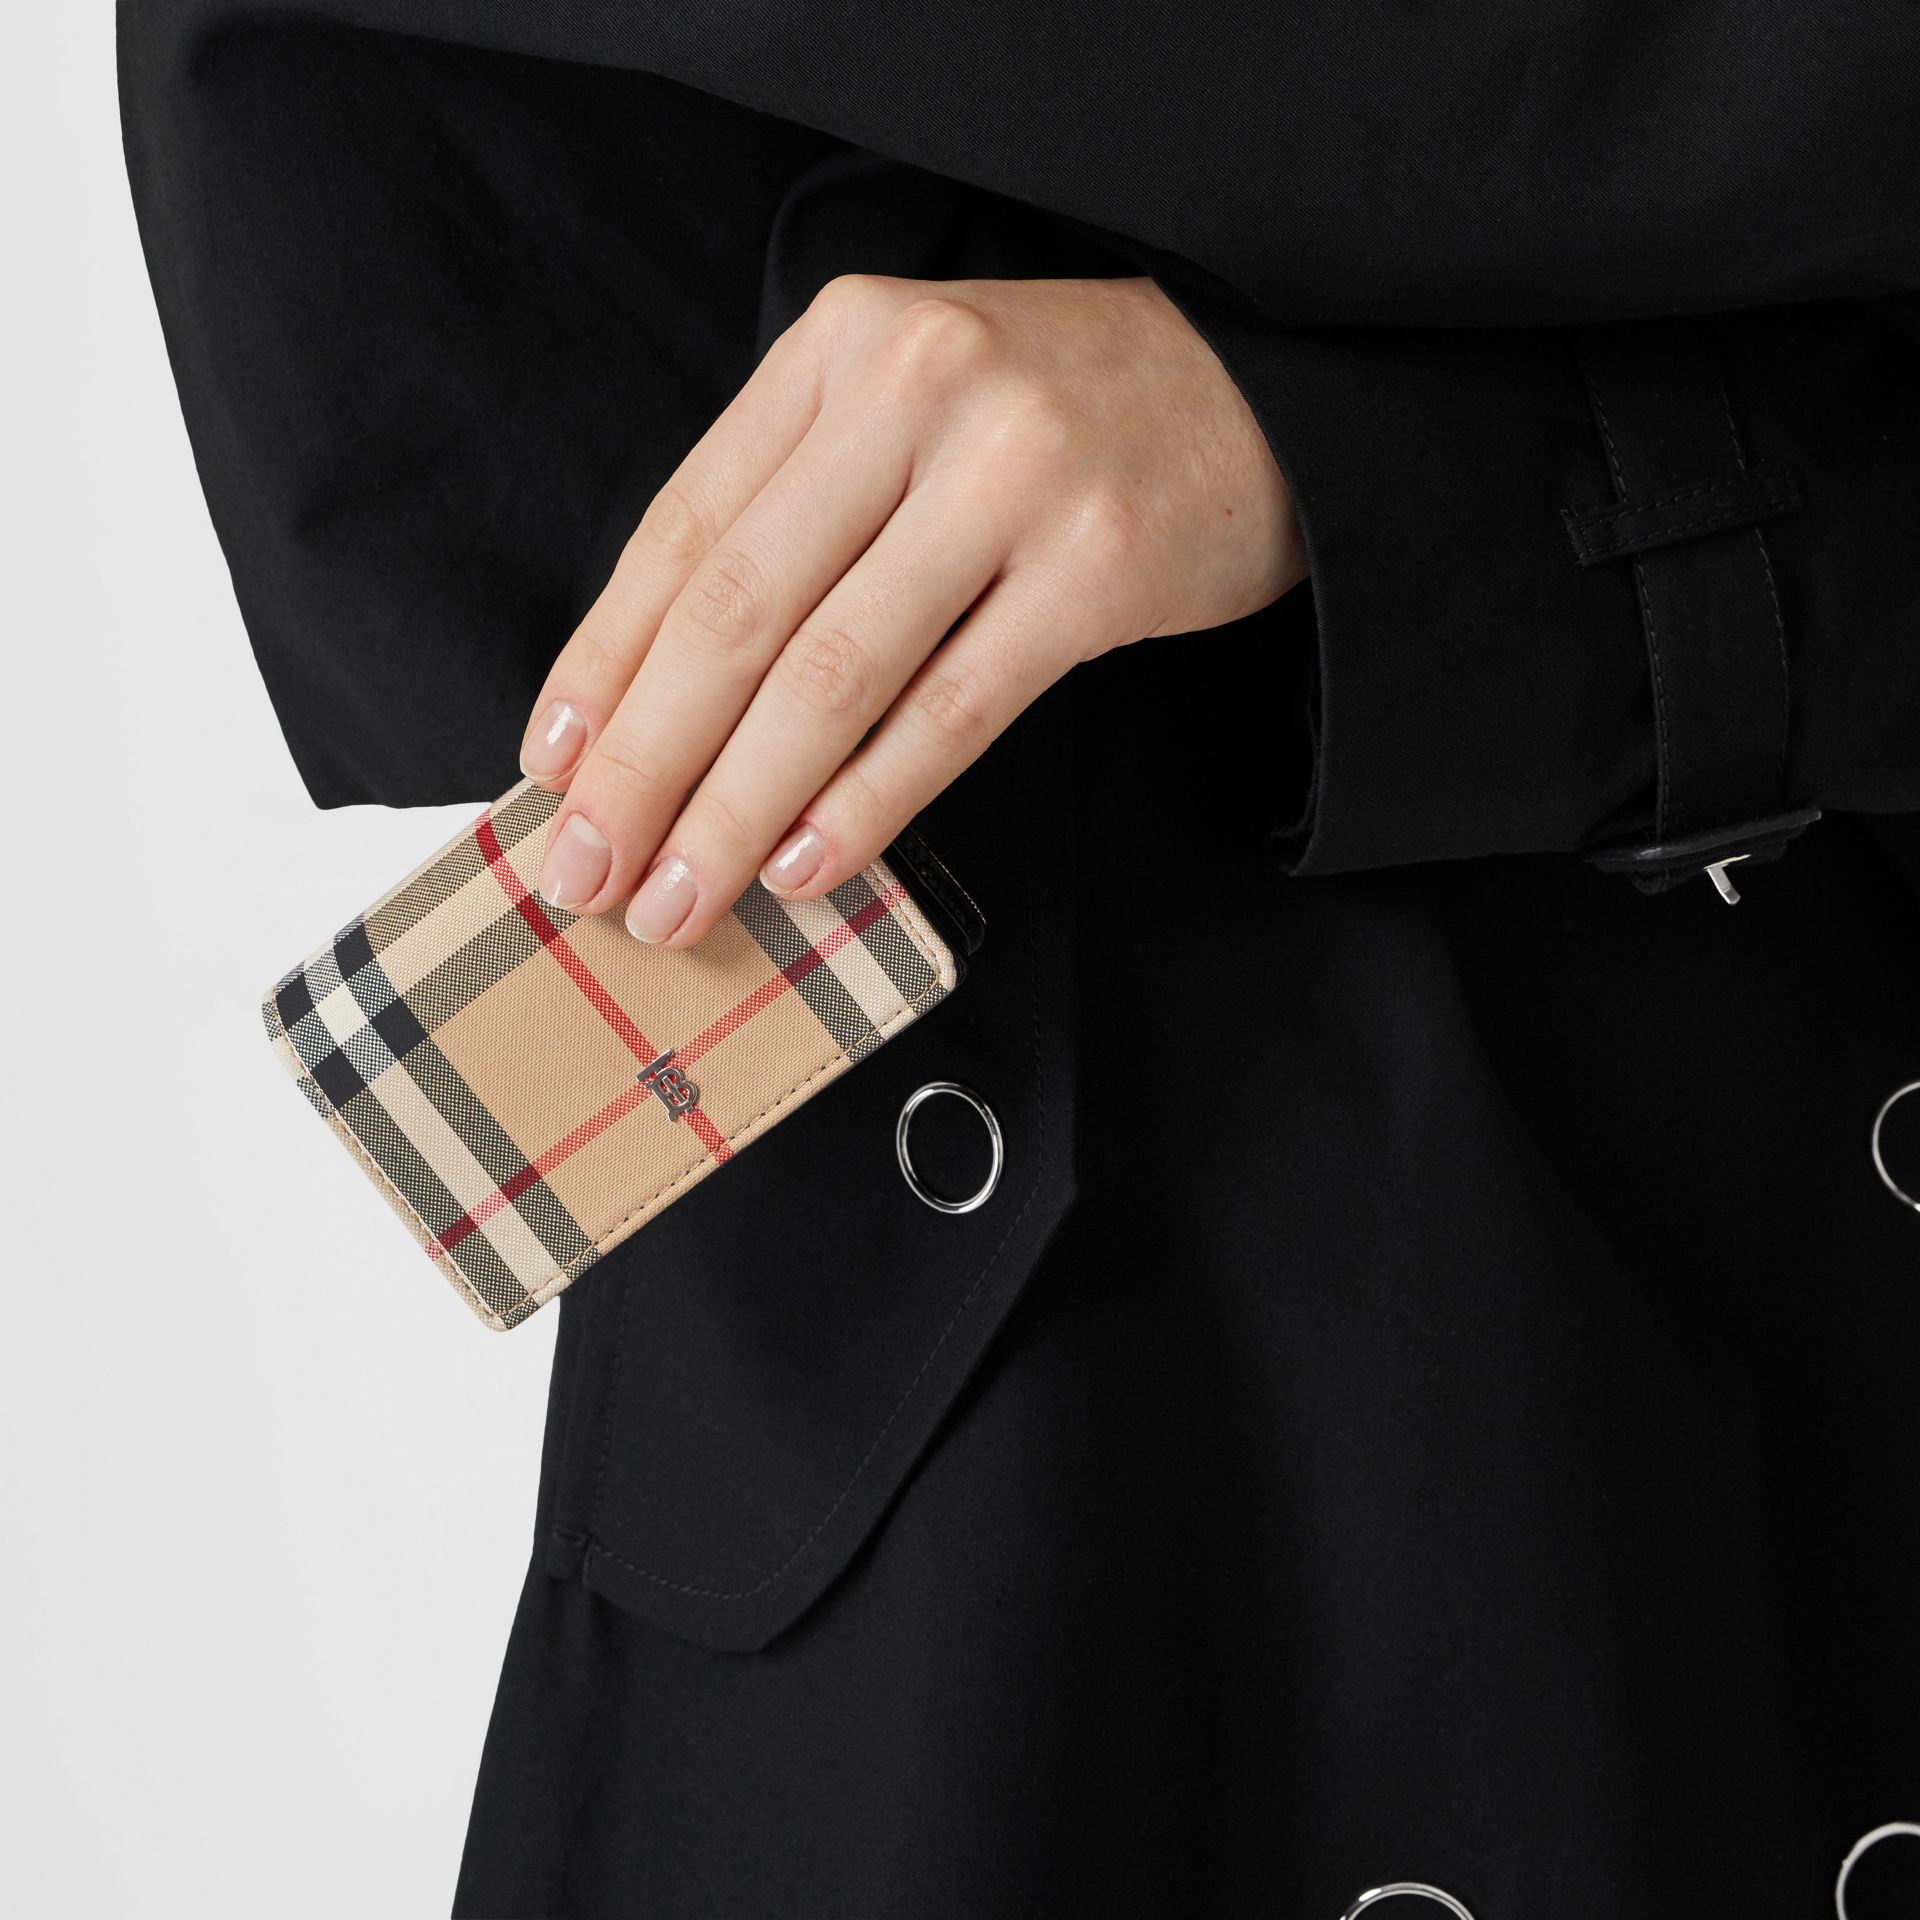 Vintage Check Card Case with Detachable Strap in Black - Women | Burberry United States - gallery image 2